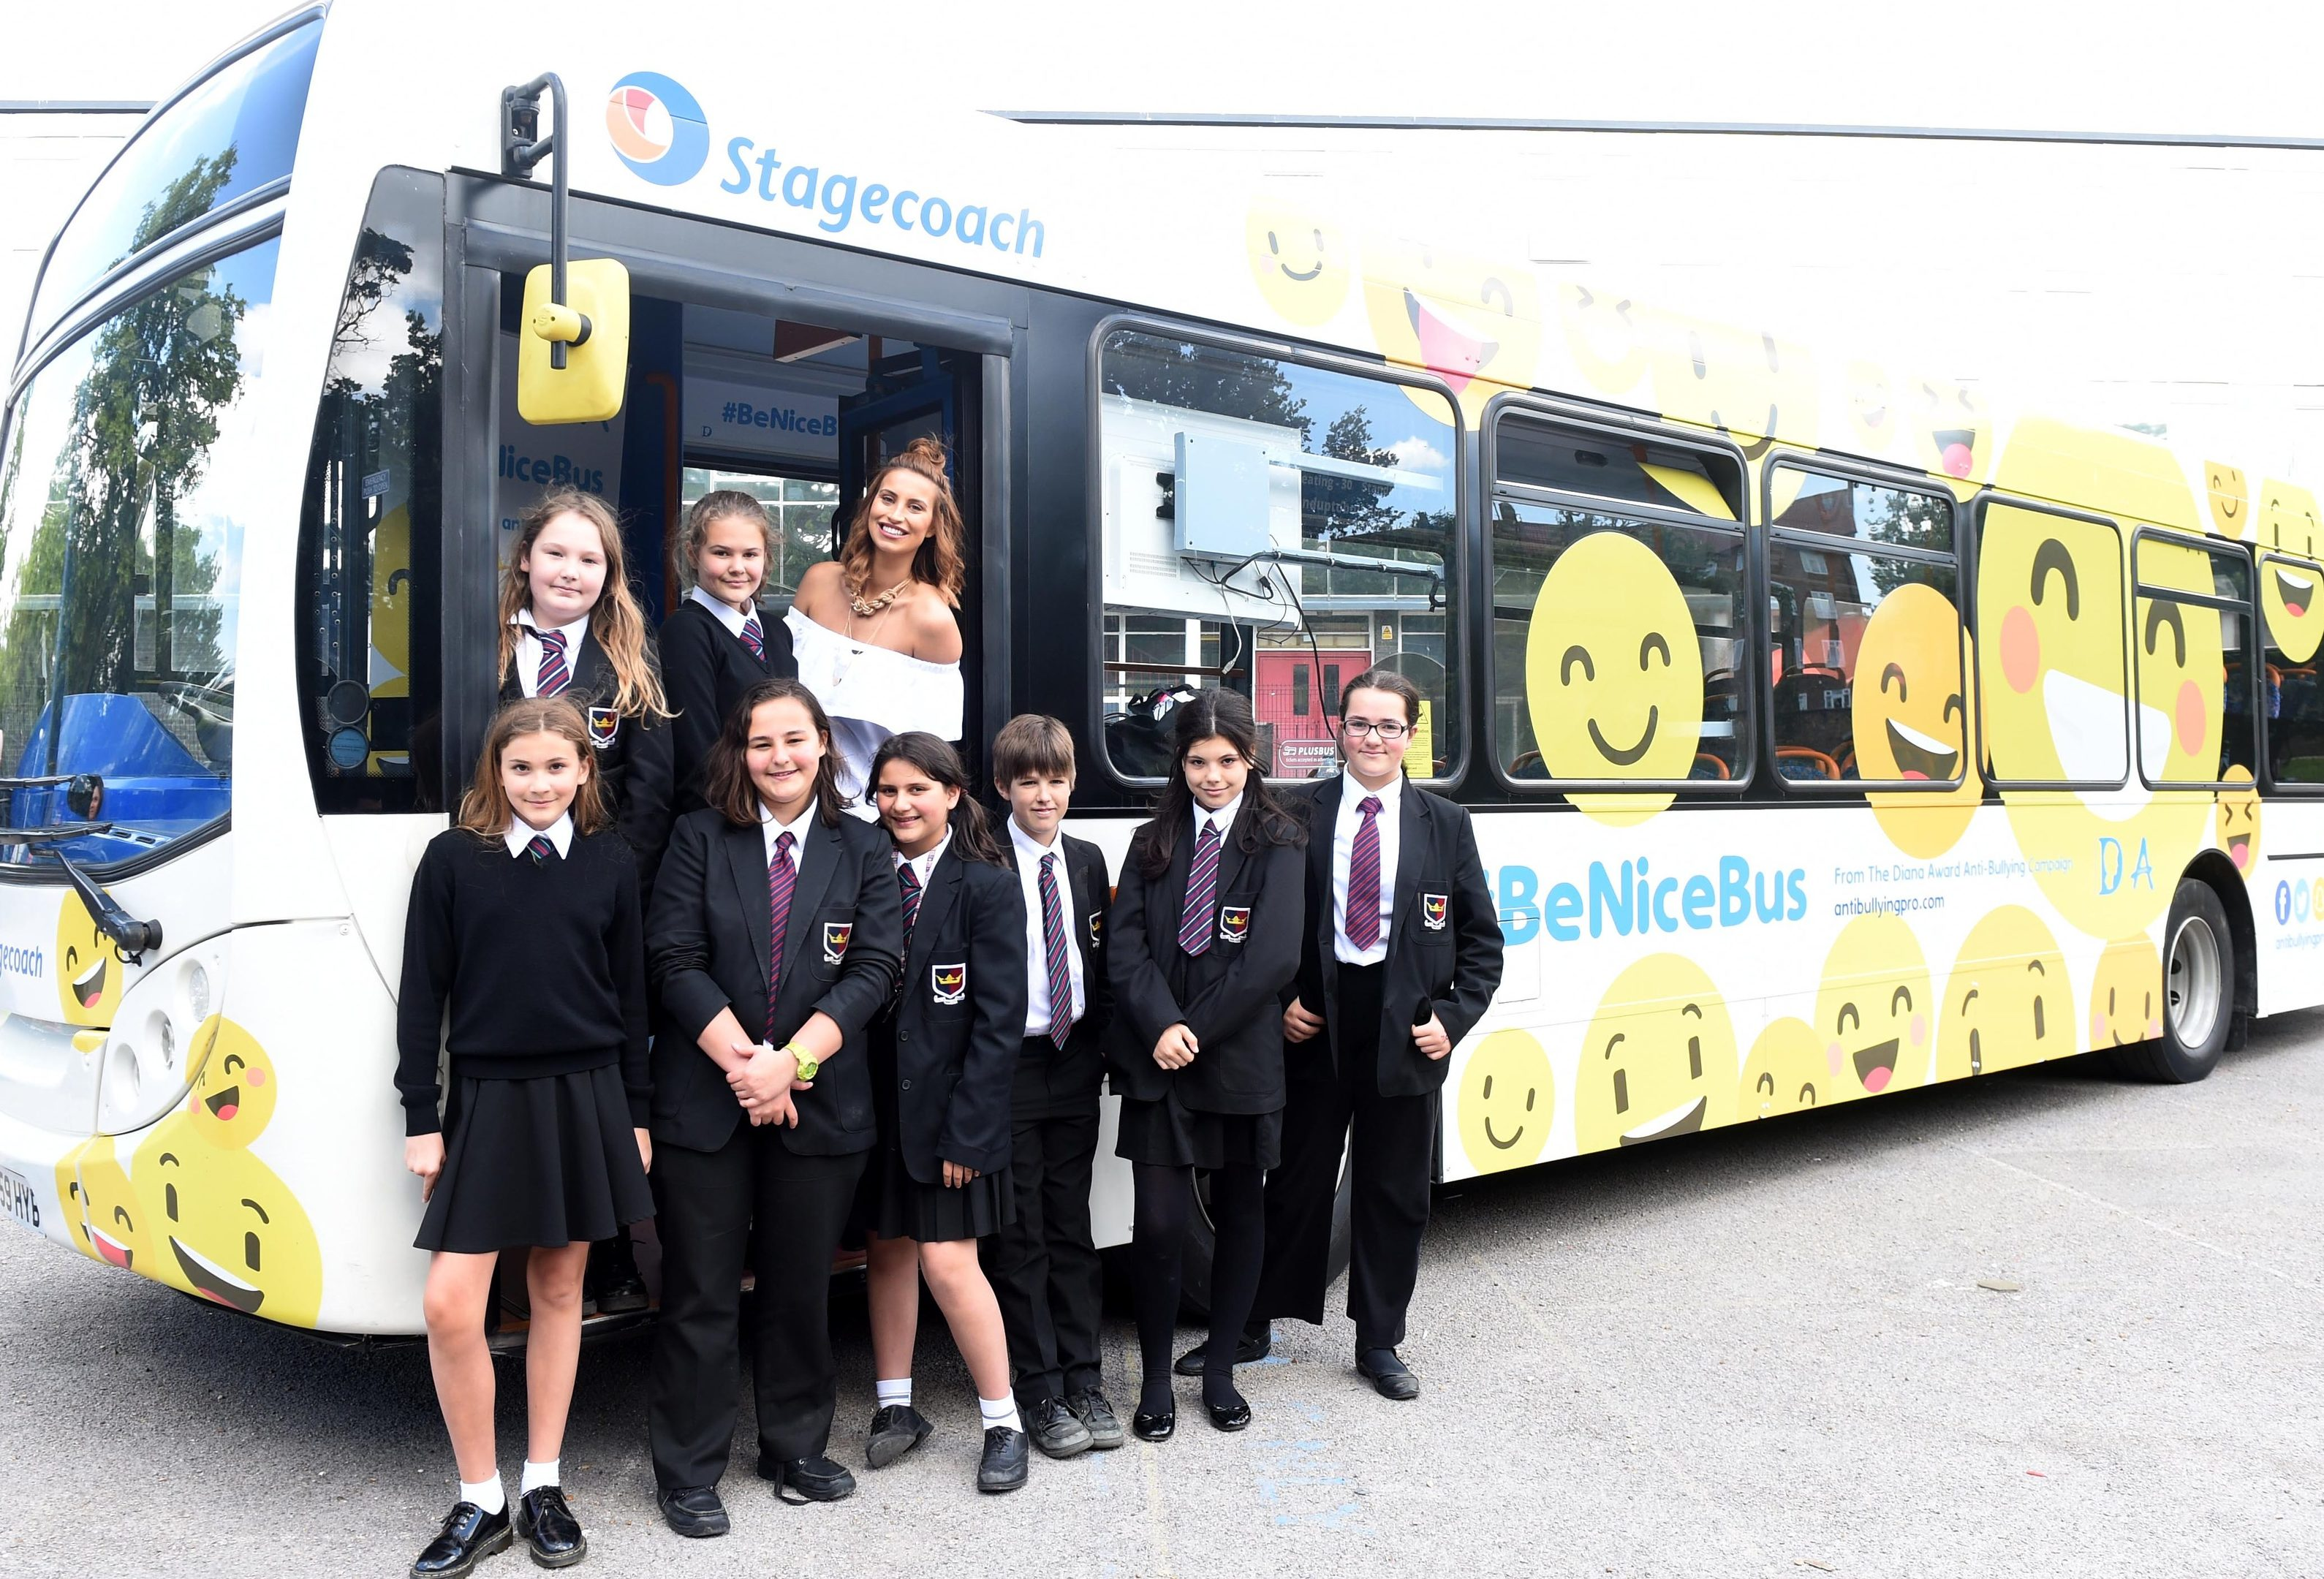 The launch of the UK's first and only anti-bullying #BeNiceBus with The Diana Award and Stagecoach, held at Kingsdale Foundation School, Alleyn Park, London. TV presenter  Ferne McCann is pictured with teenagers